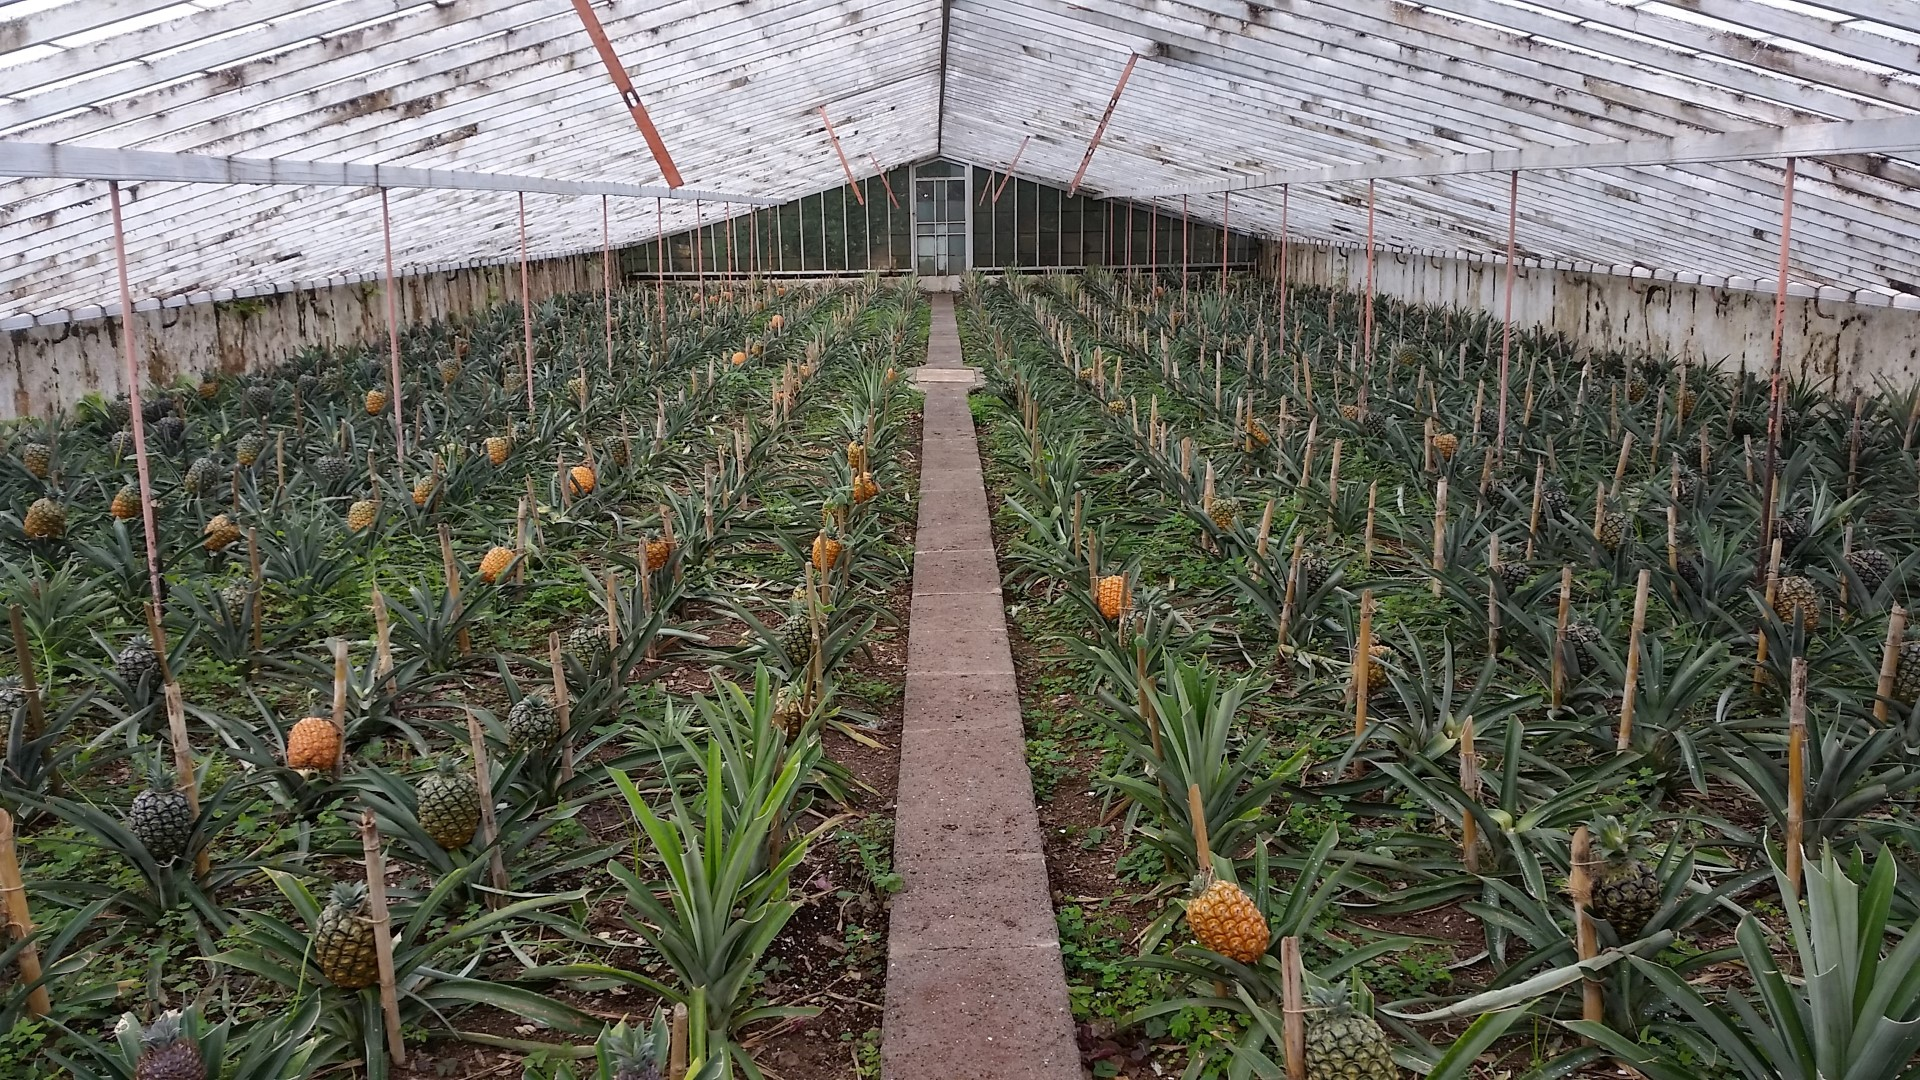 Pineapple Plantation